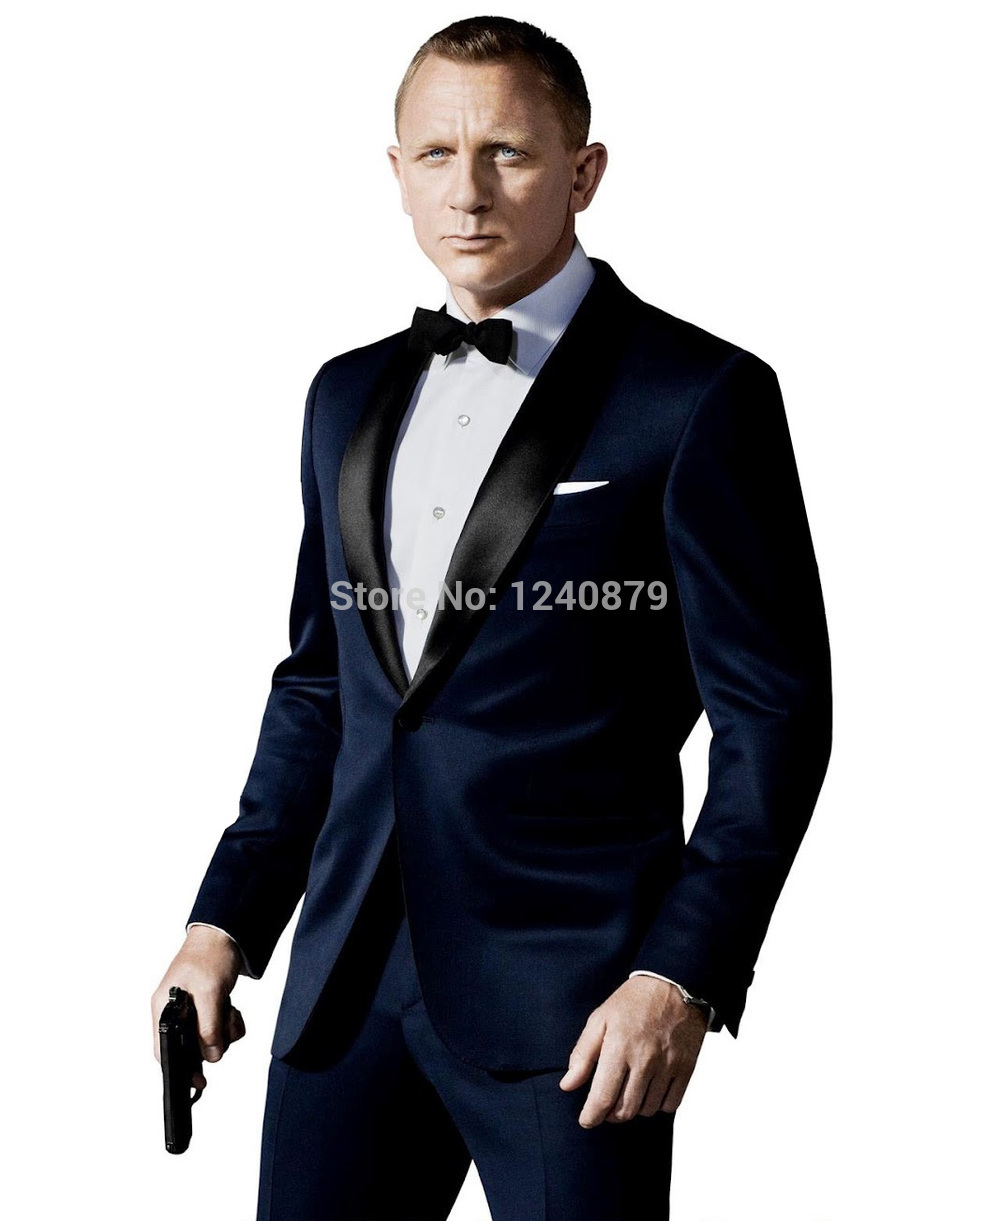 Custom Made Dark Blue Tuxedo Inspired By Suit Worn In James Bond Wedding Suit For Men Groom Jacket Pants Bow Black